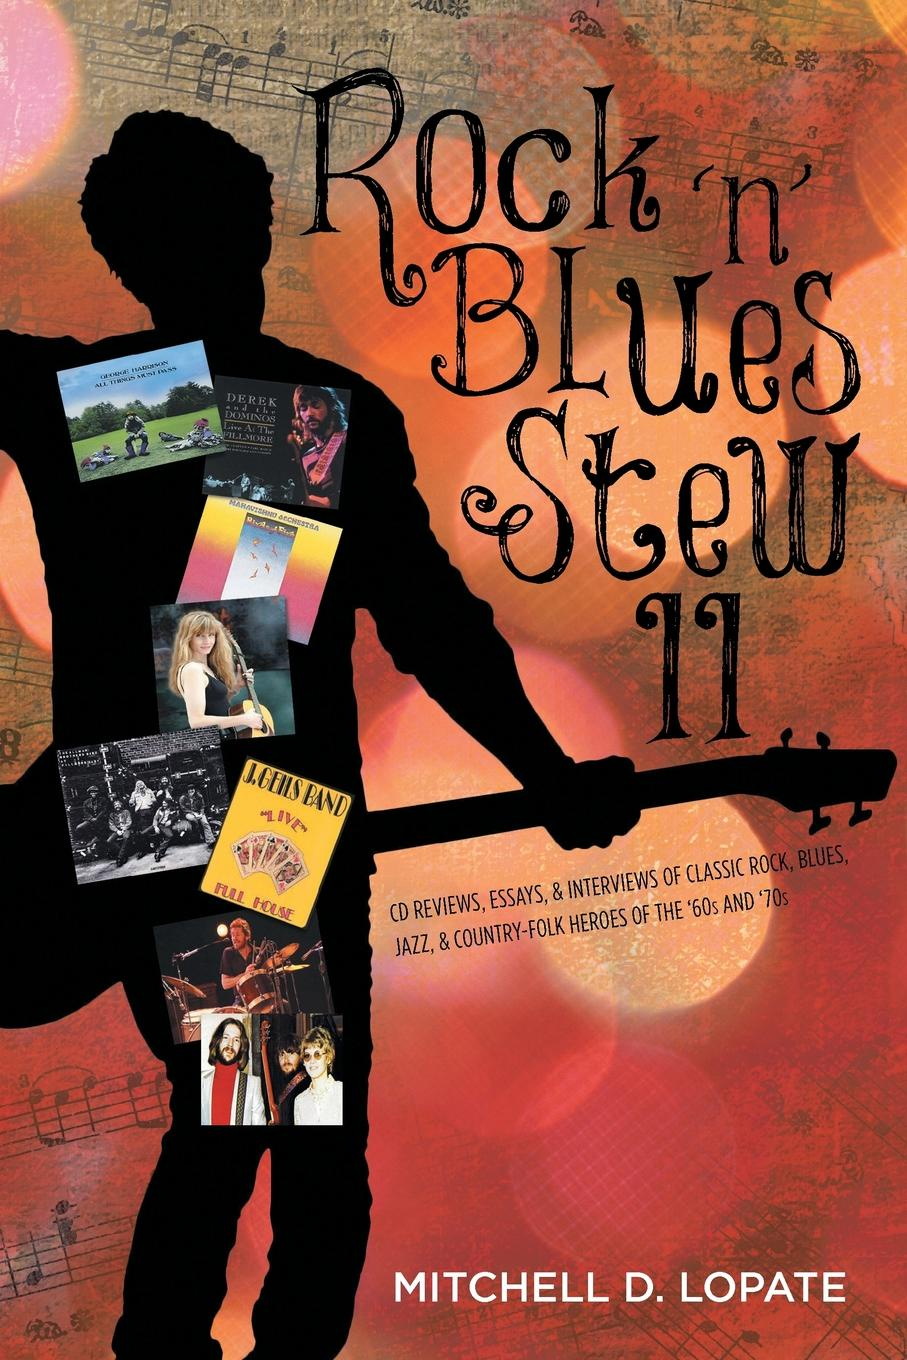 Mitchell D. Lopate Rock .n. Blues Stew II. CD Reviews, Essays, . Interviews of Classic Rock, Blues, Jazz, . Country-Folk Heroes of the .60s and .70s electrelane electrelane rock it to the moon